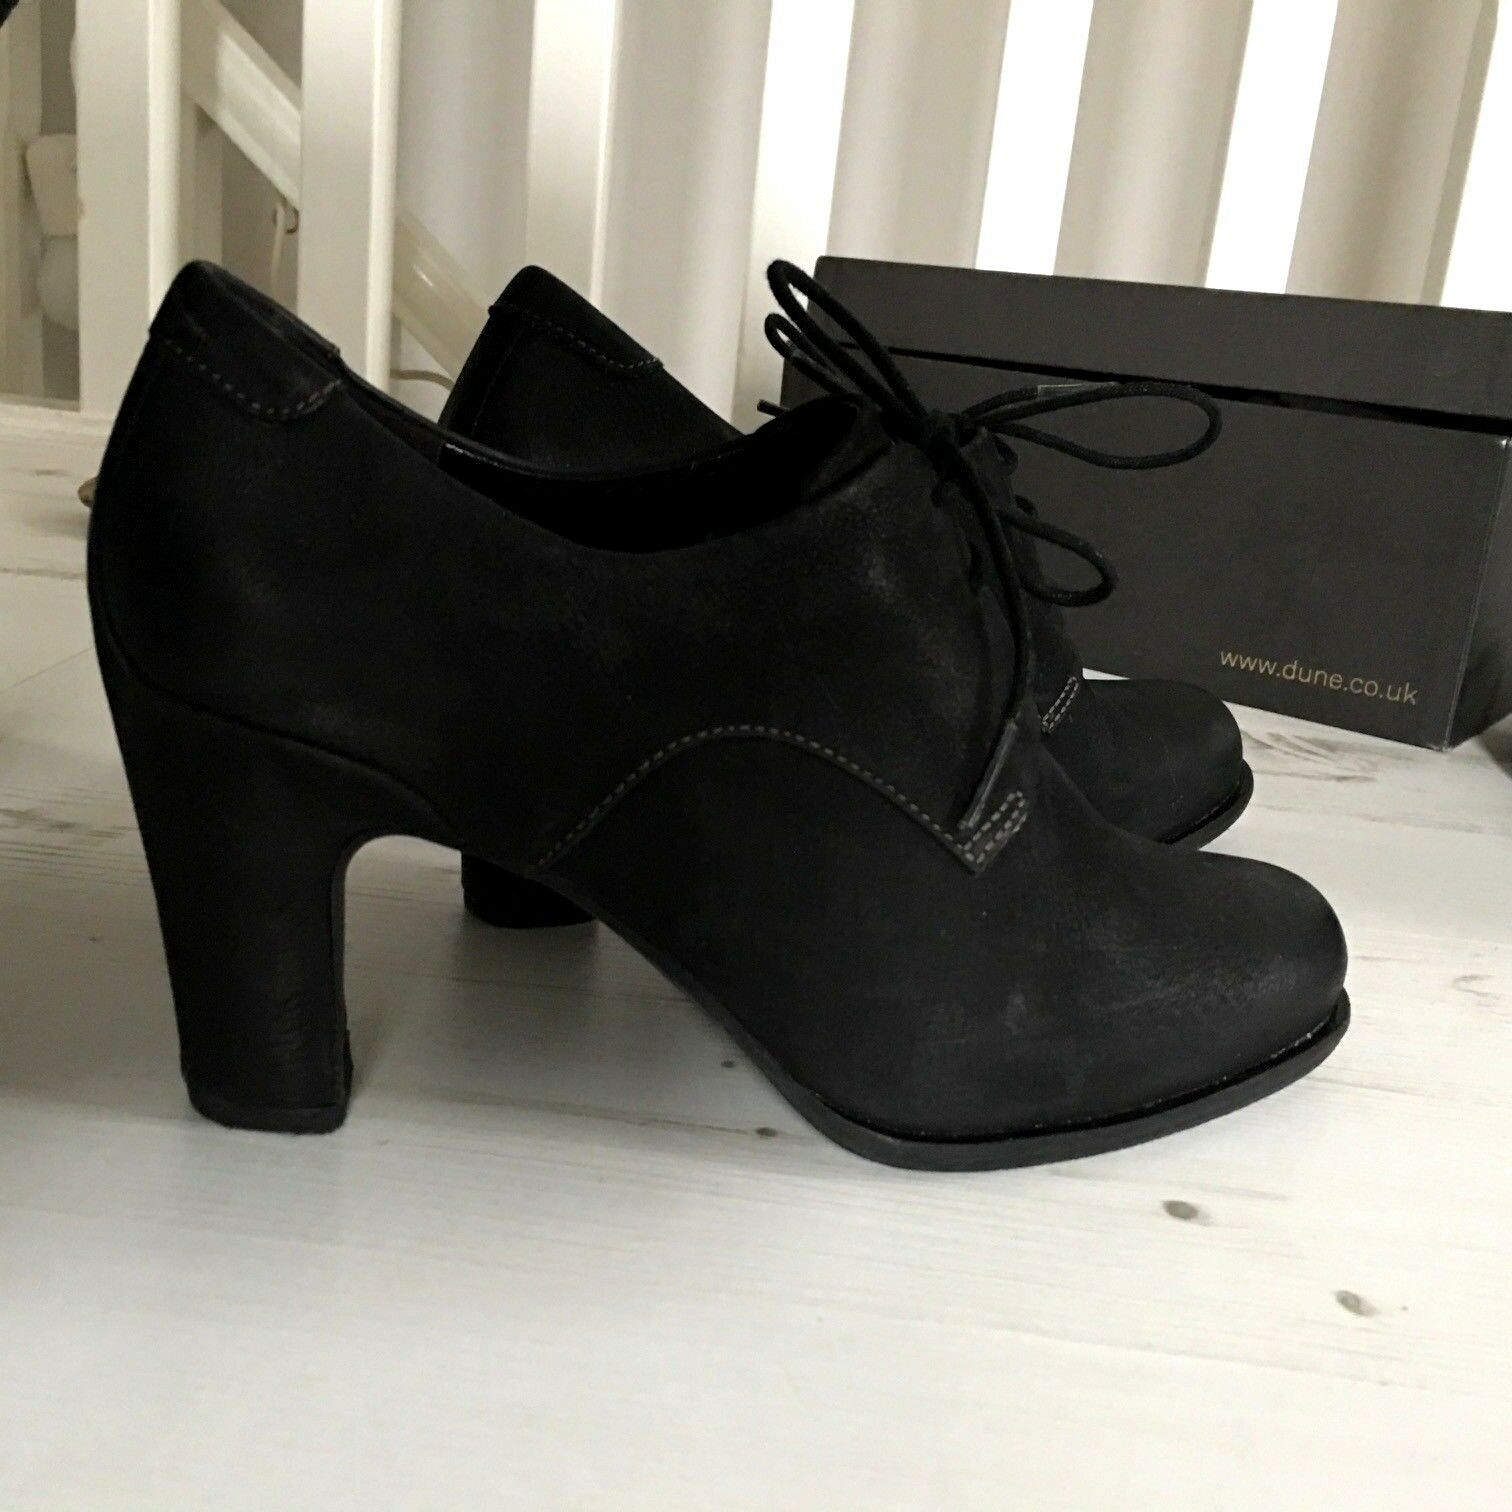 ECCO Womens Black Leather High Heel Lace Up shoes Boots UK 5 EU 38